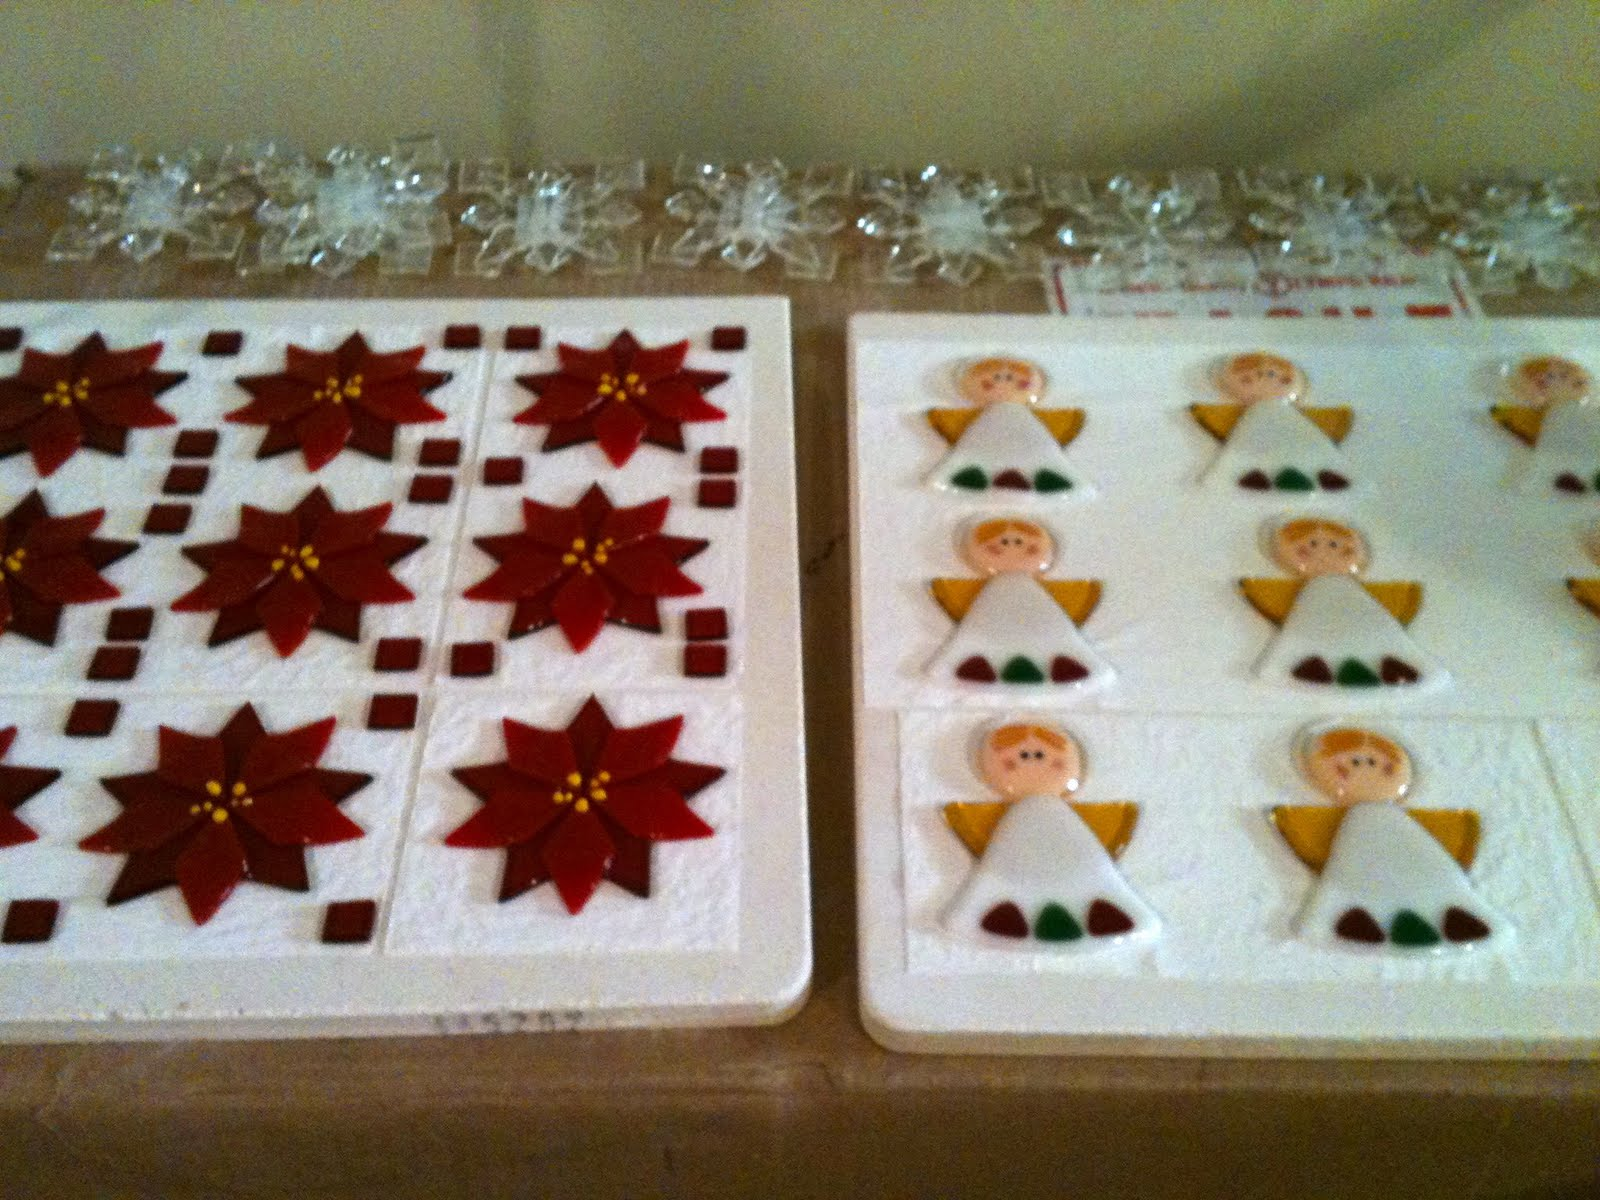 gearing up for the holidays with fused glass ornaments